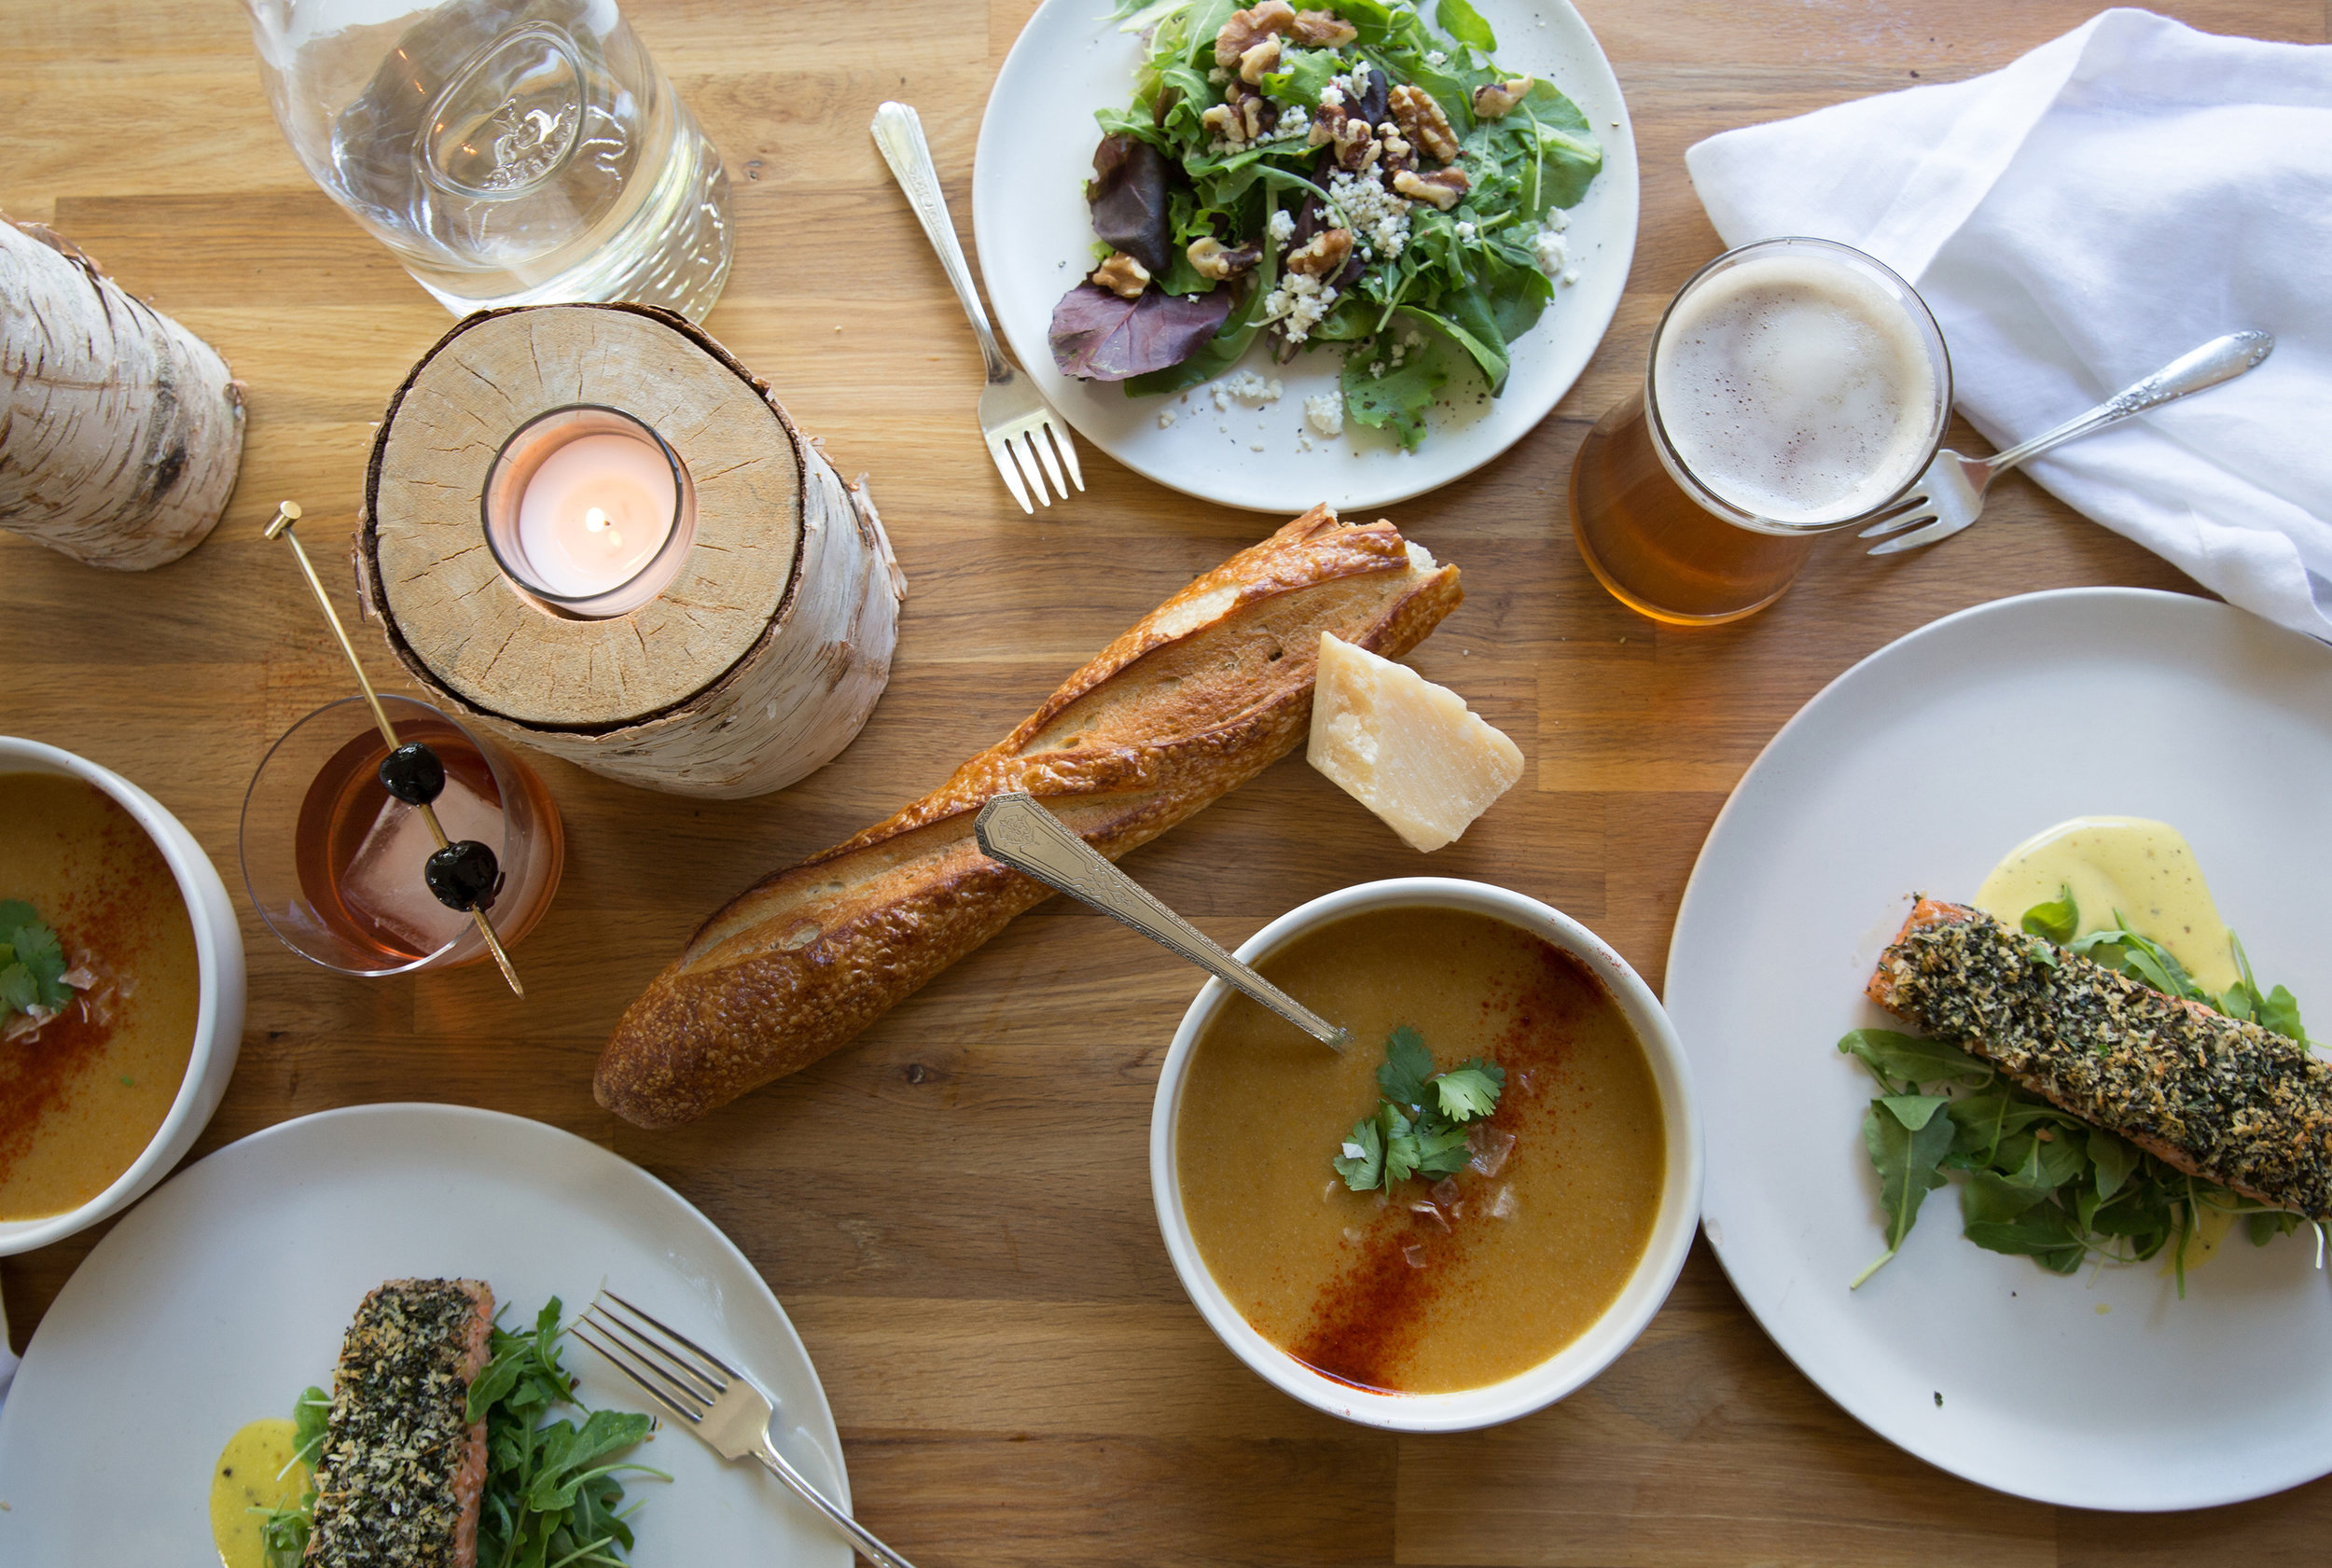 Photo: Fawn Deviney; Food Styling: Constance Higley